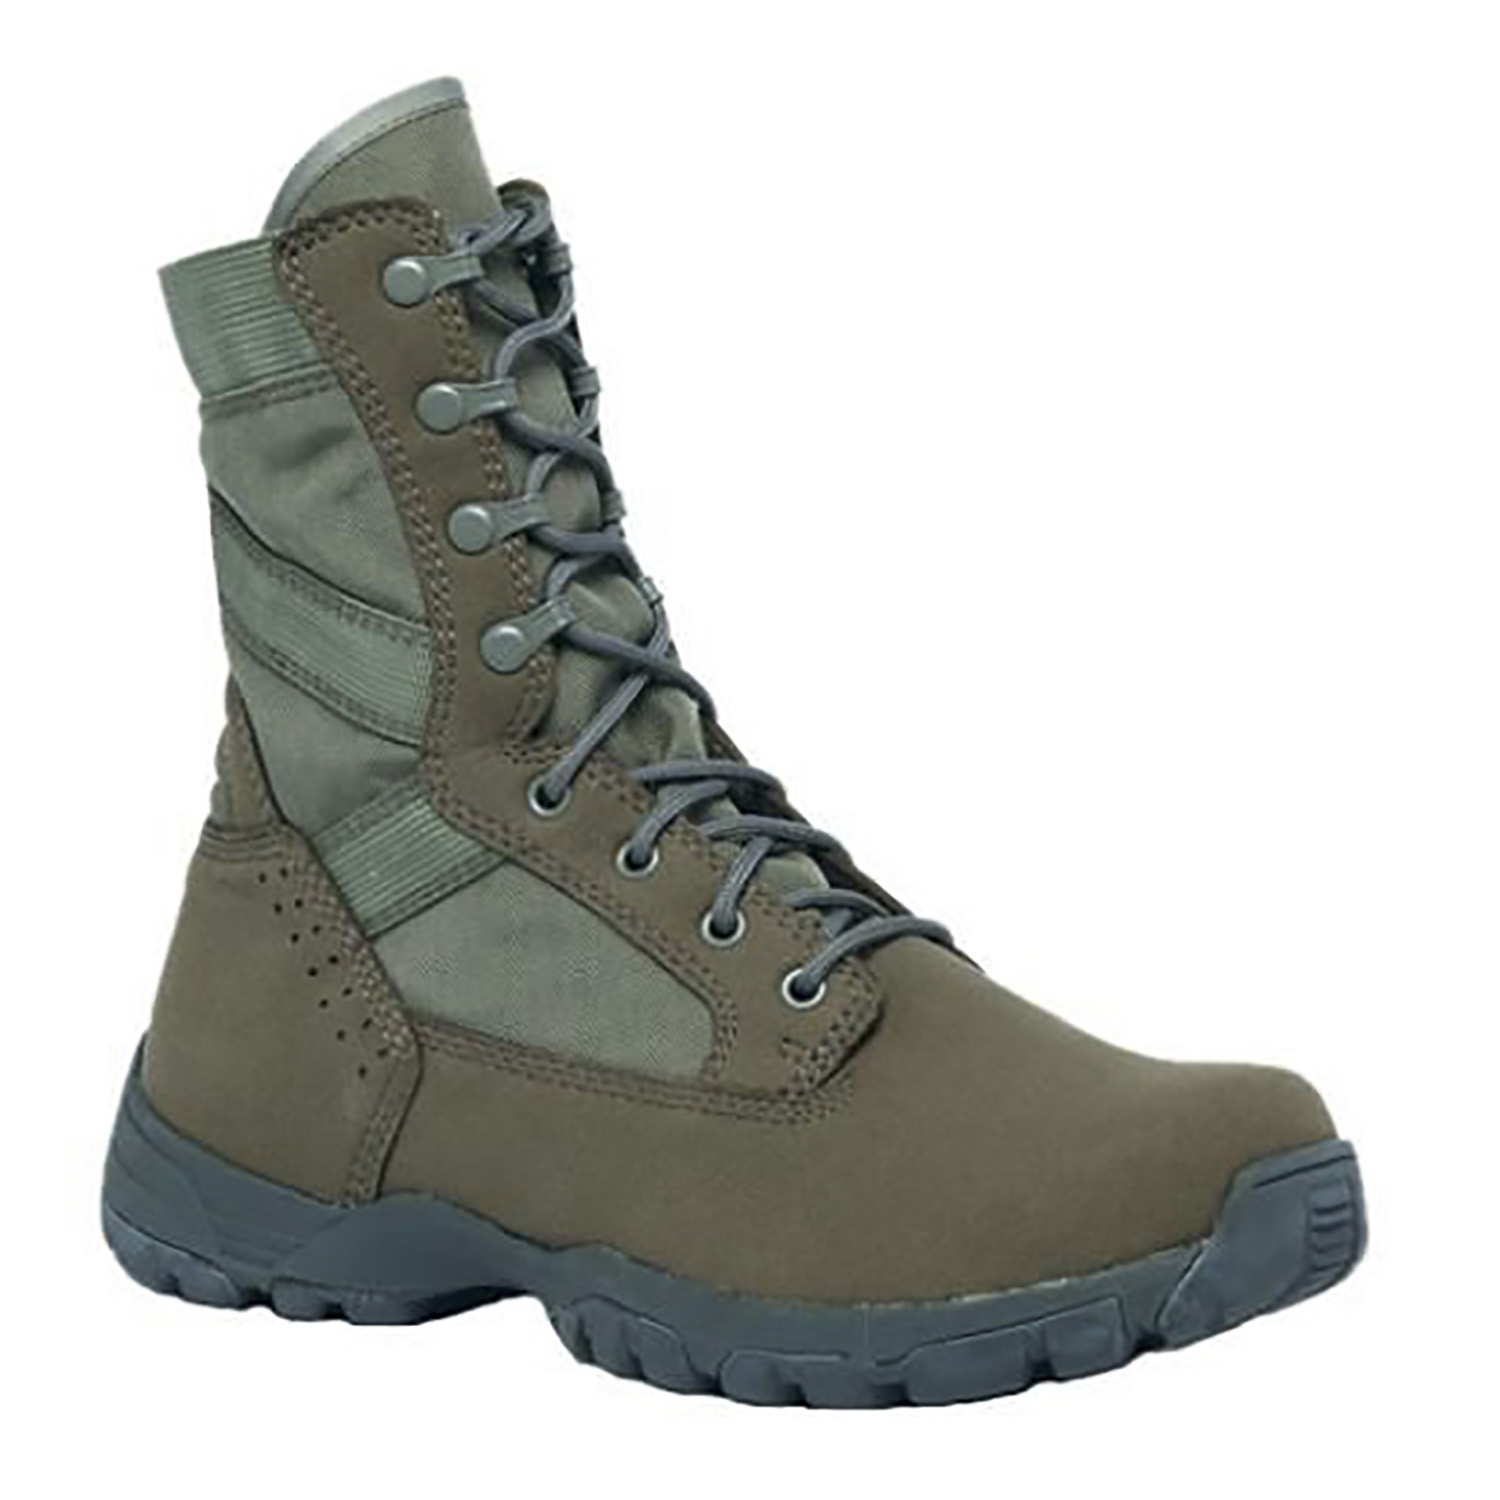 super popular 3655b 2d97d Sage Flyweight Boots Ultra Lightweight Hot Weather.